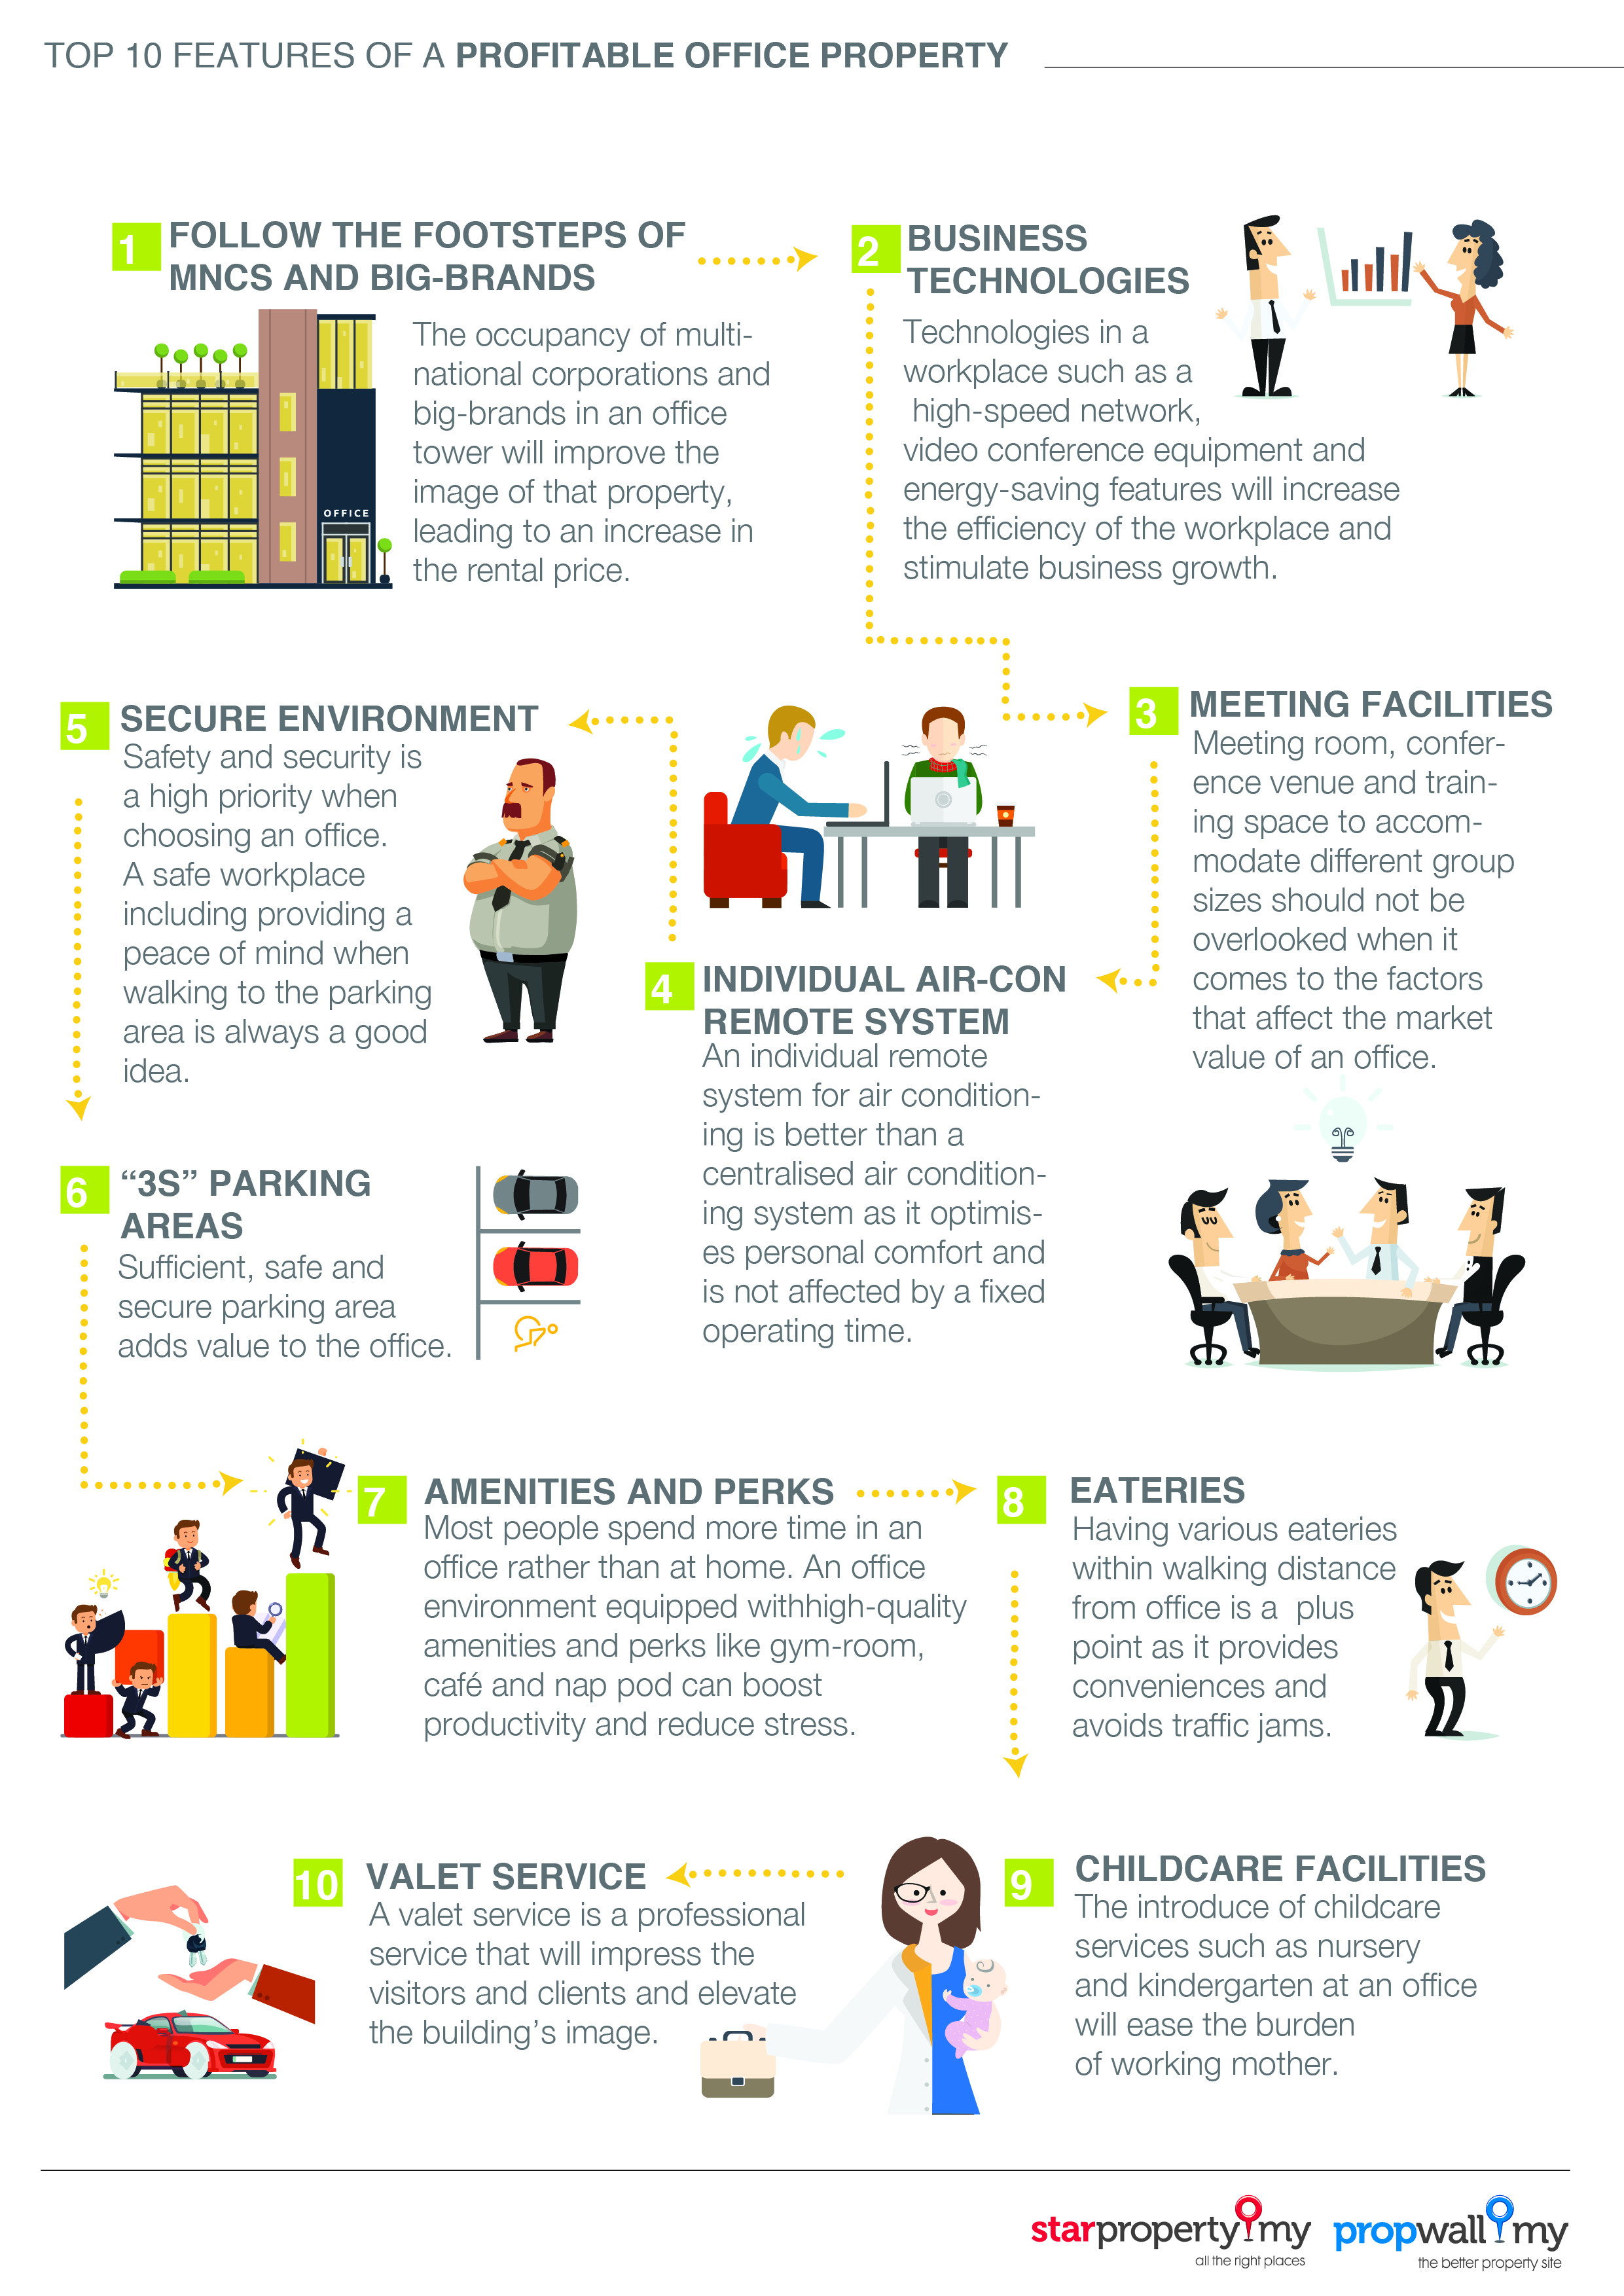 Top 10 features of a profitable office property